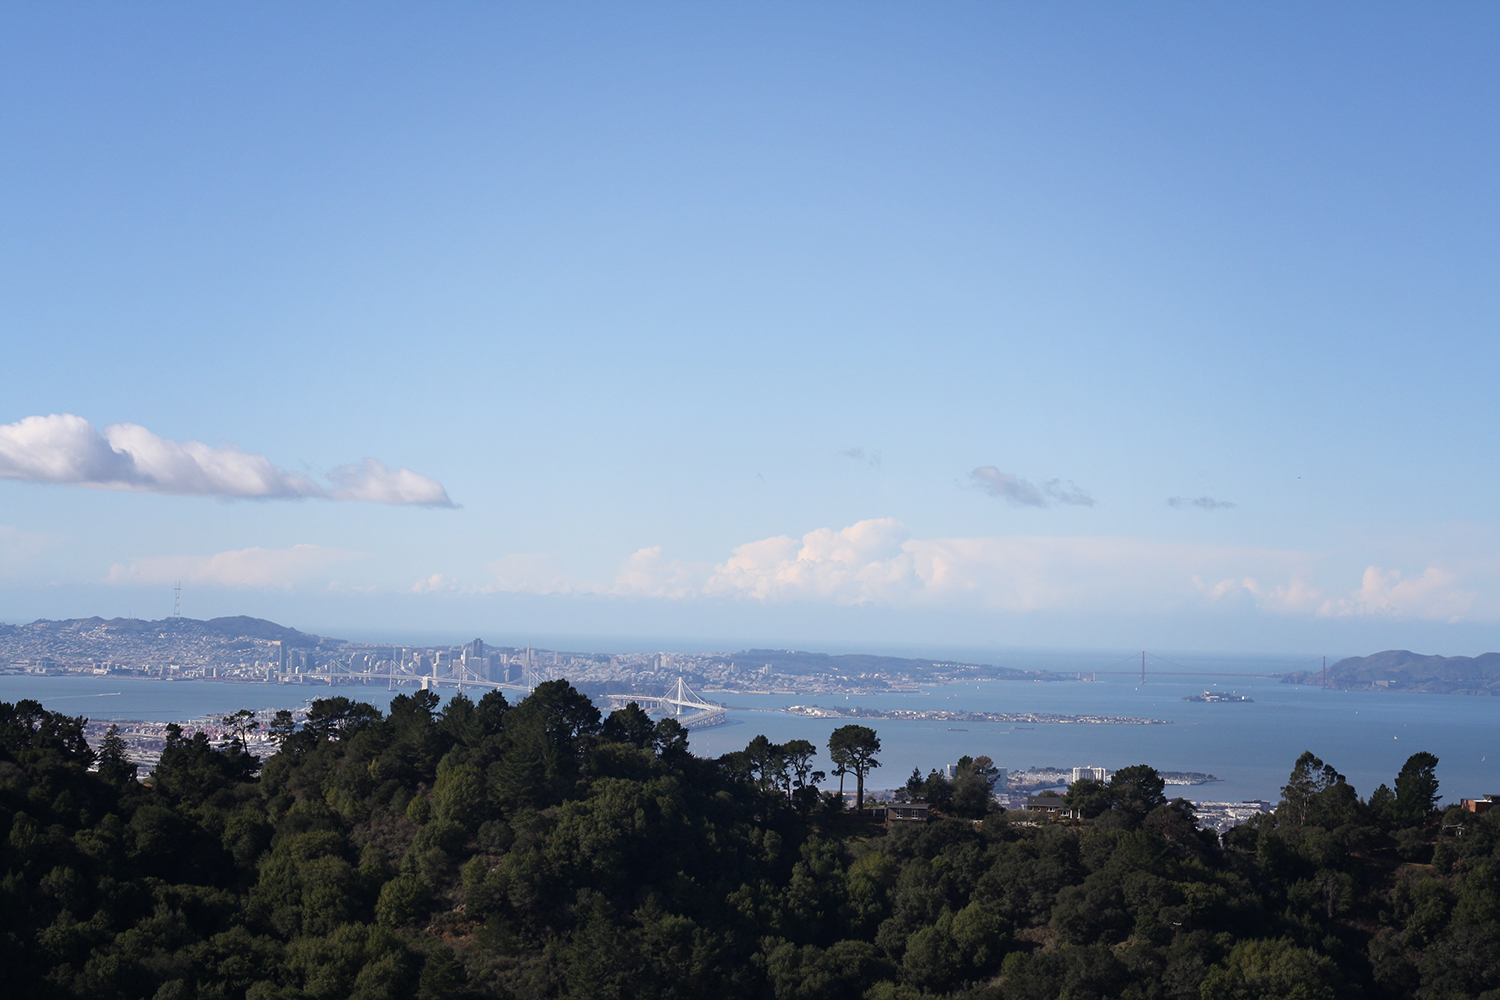 Since I don't really have an image that truly depicts the word no (or 'nope'), here's a beautiful photo of San Francisco I took on a hike recently. Isn't it lovely? Yeah...